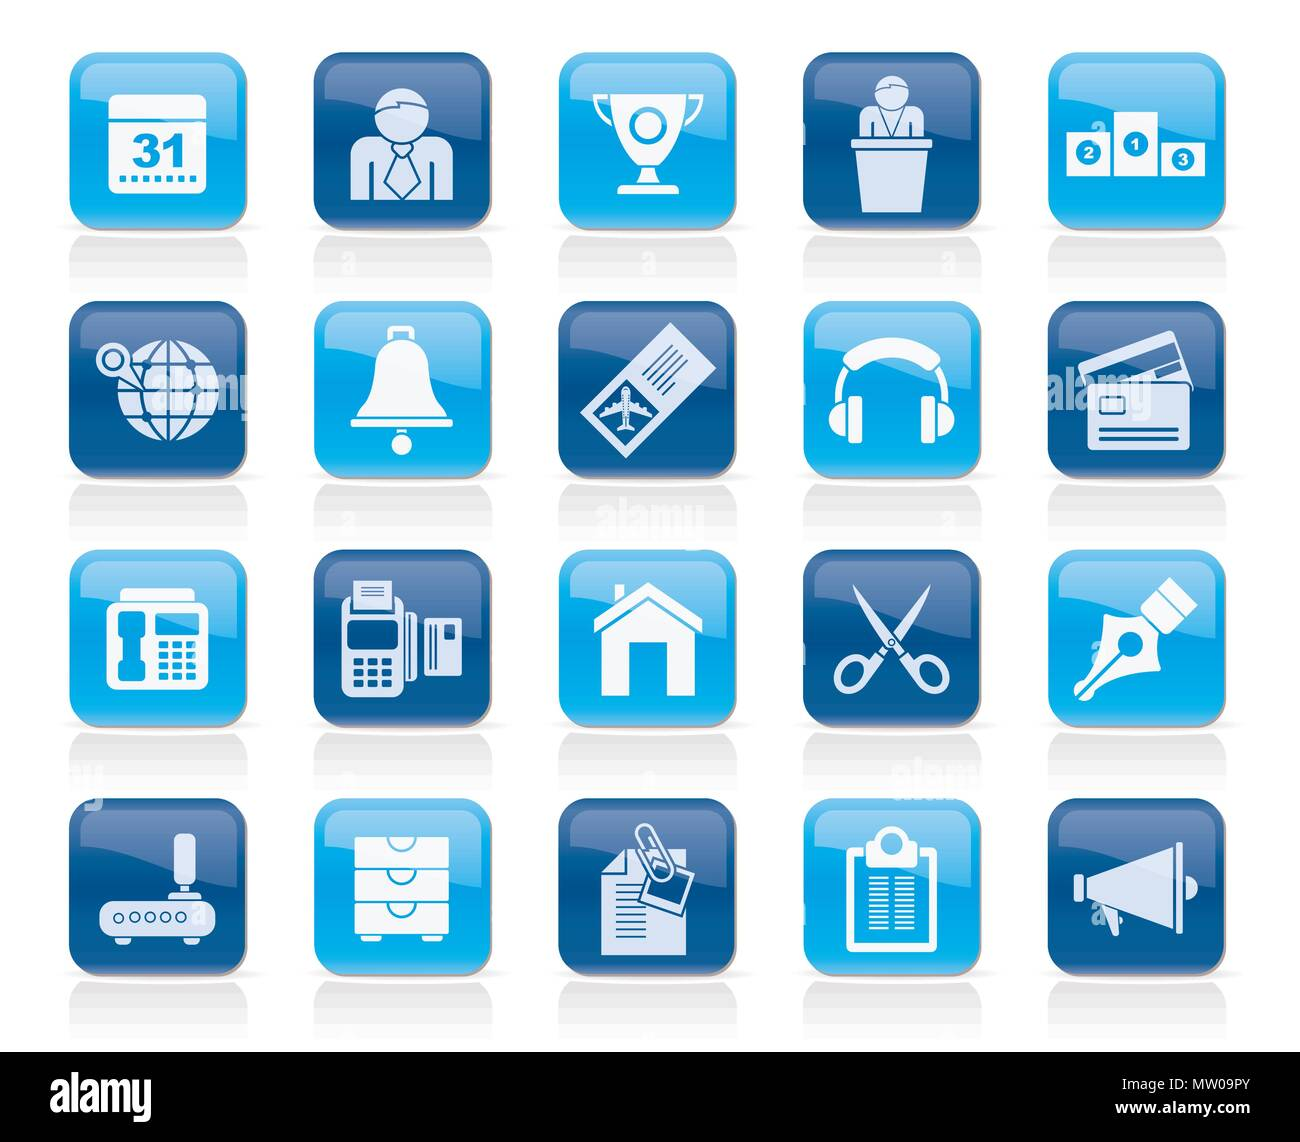 Business and office equipment icons - vector icon set 4 - Stock Vector